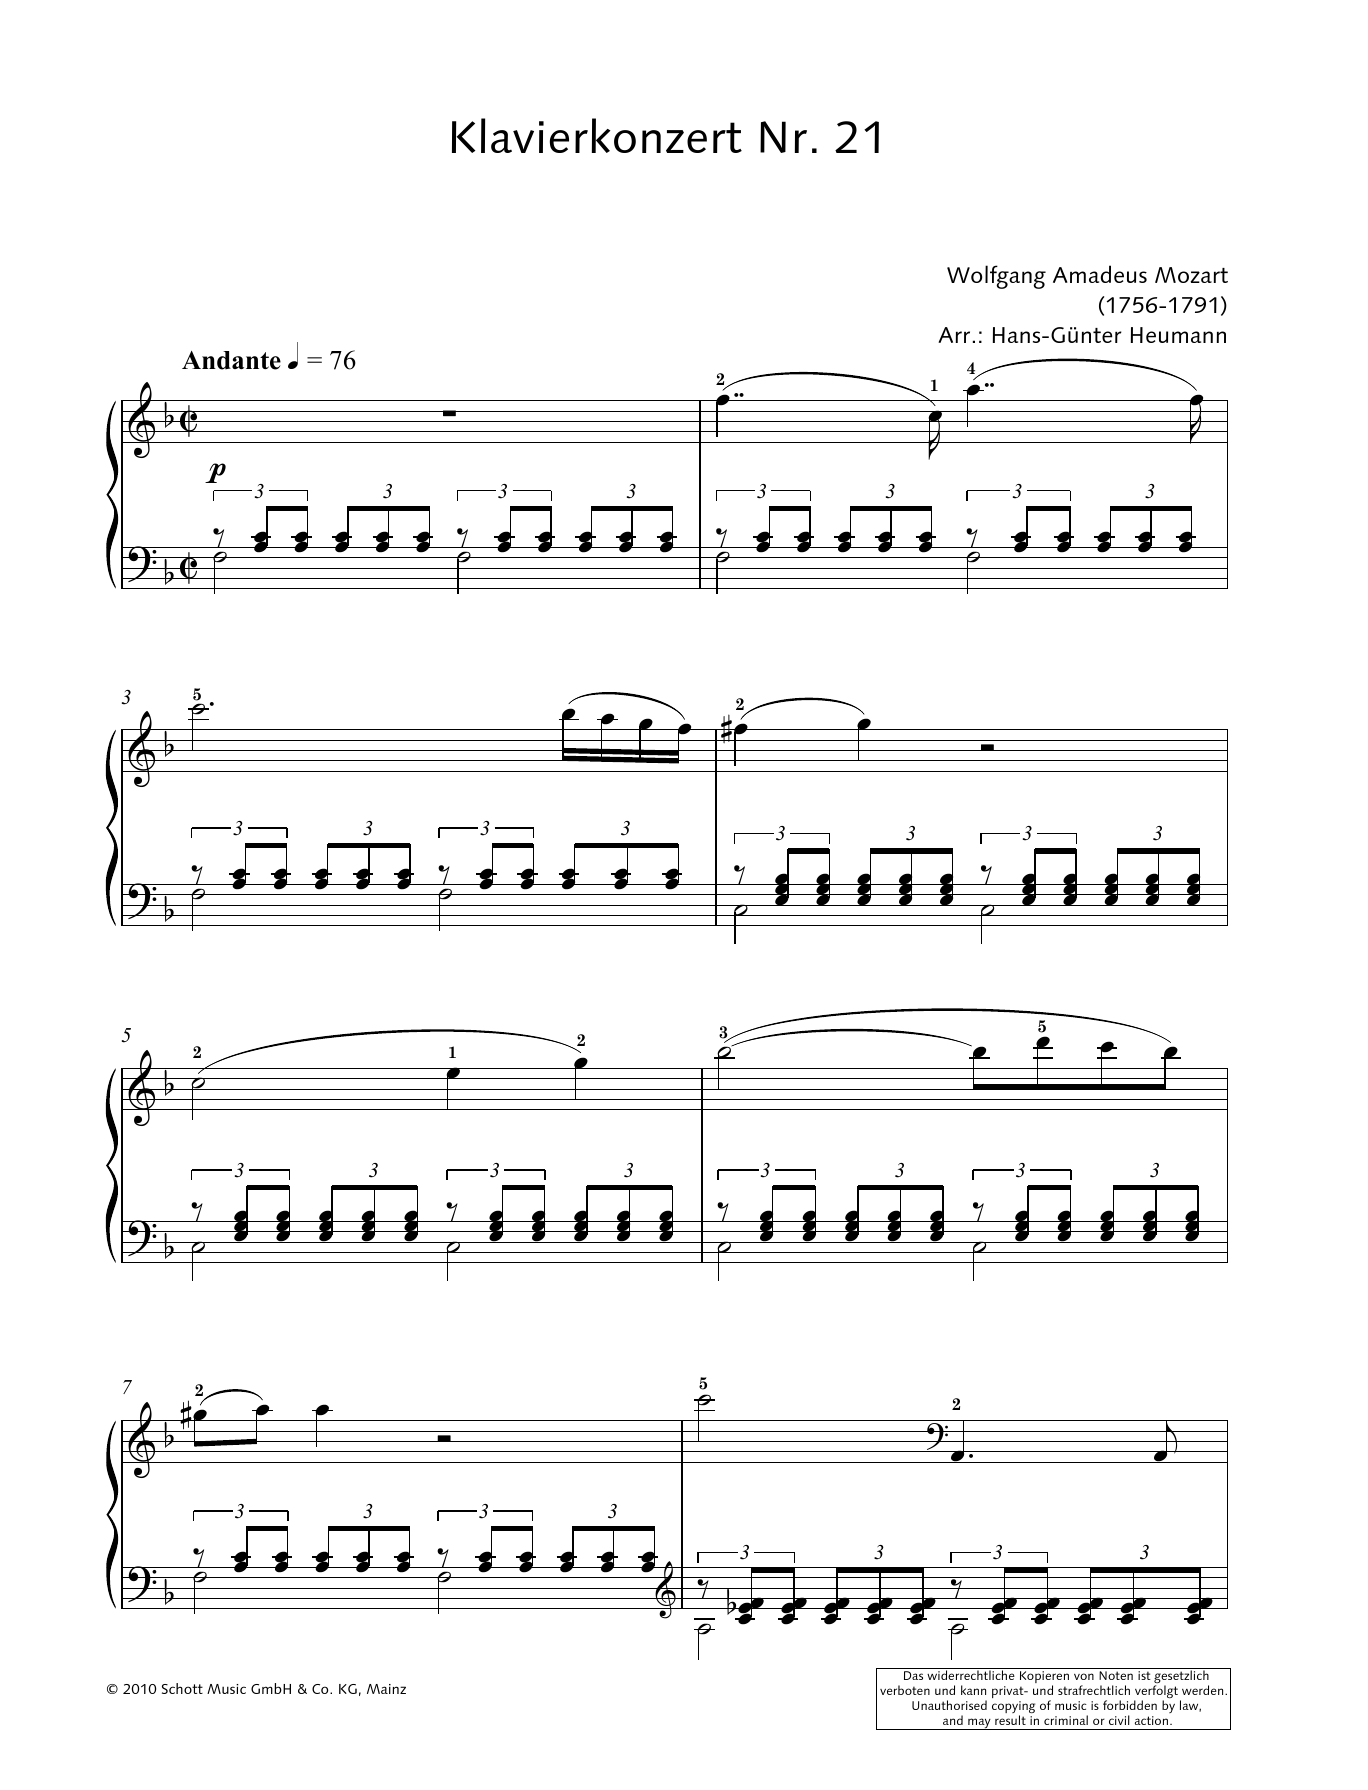 Concerto for Piano and Orchestra No. 21 in C major Sheet Music